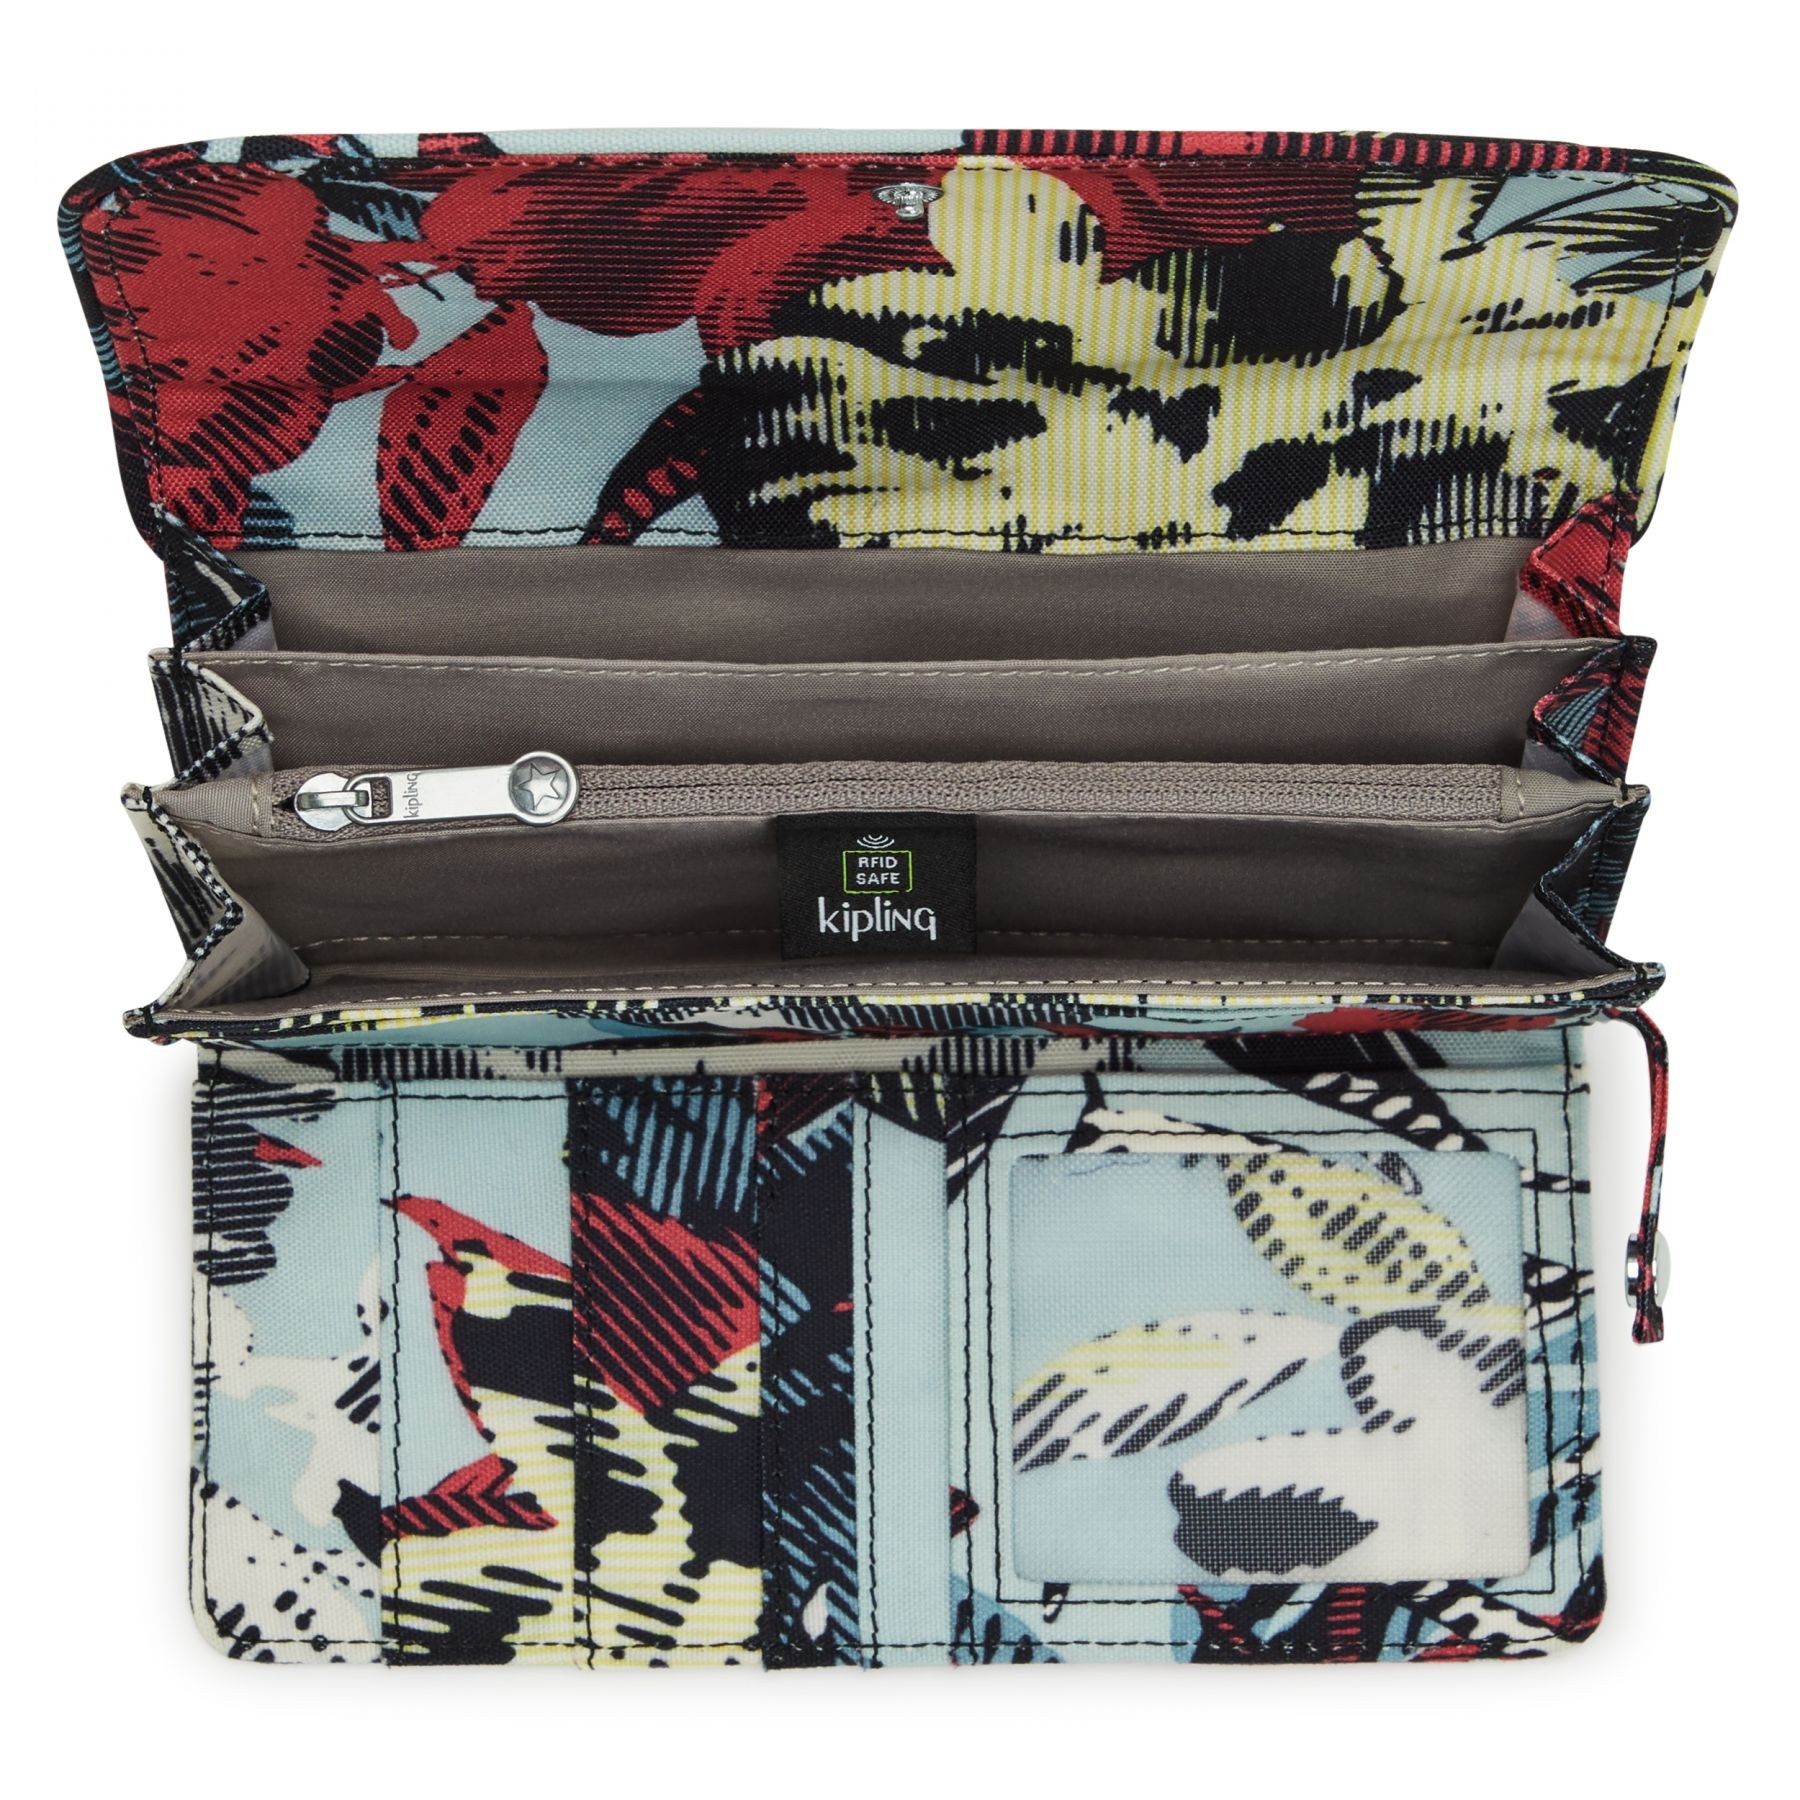 MONEY LAND ACCESSORIES by Kipling - Inside view